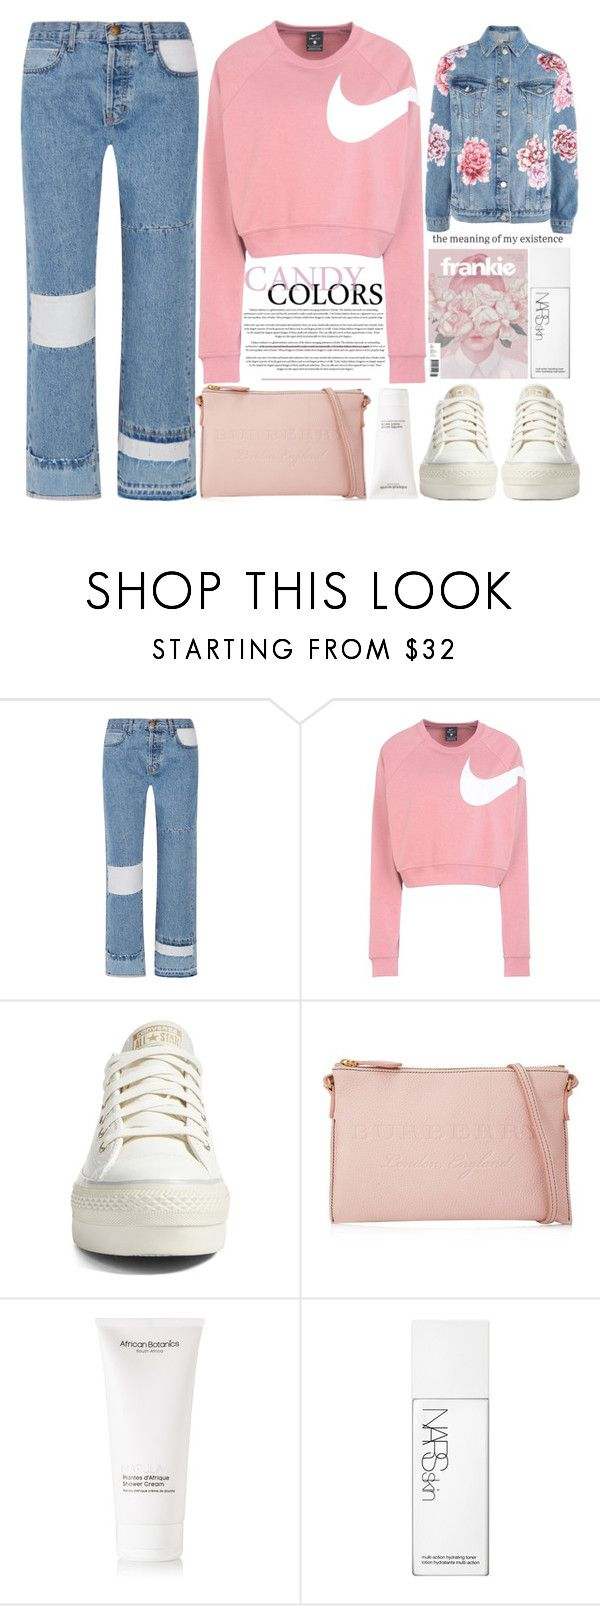 """Candy colors"" by theapapa ❤ liked on Polyvore featuring Current/Elliott, NIKE, Converse, Burberry, African Botanics, NARS Cosmetics and Topshop"